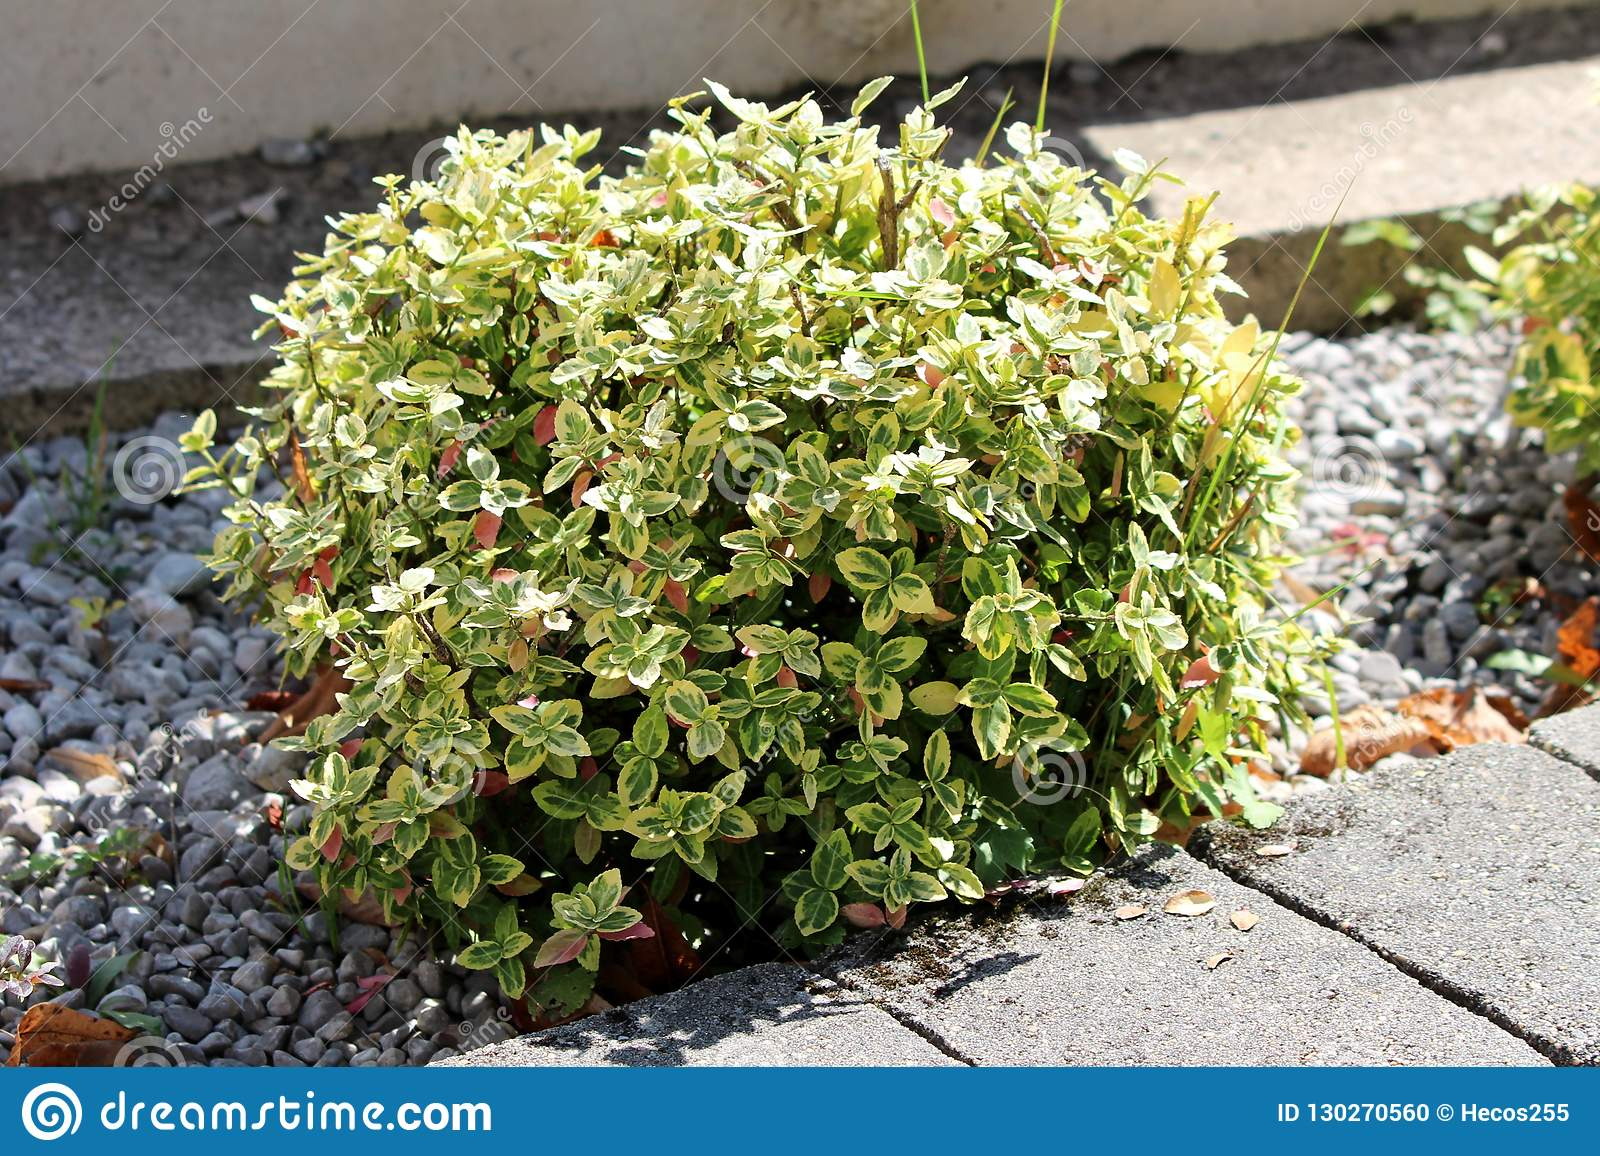 Wintercreeper or Euonymus fortunei evergreen shrub plant with green to yellow leaves growing as bush next to stone tiles sidewalk